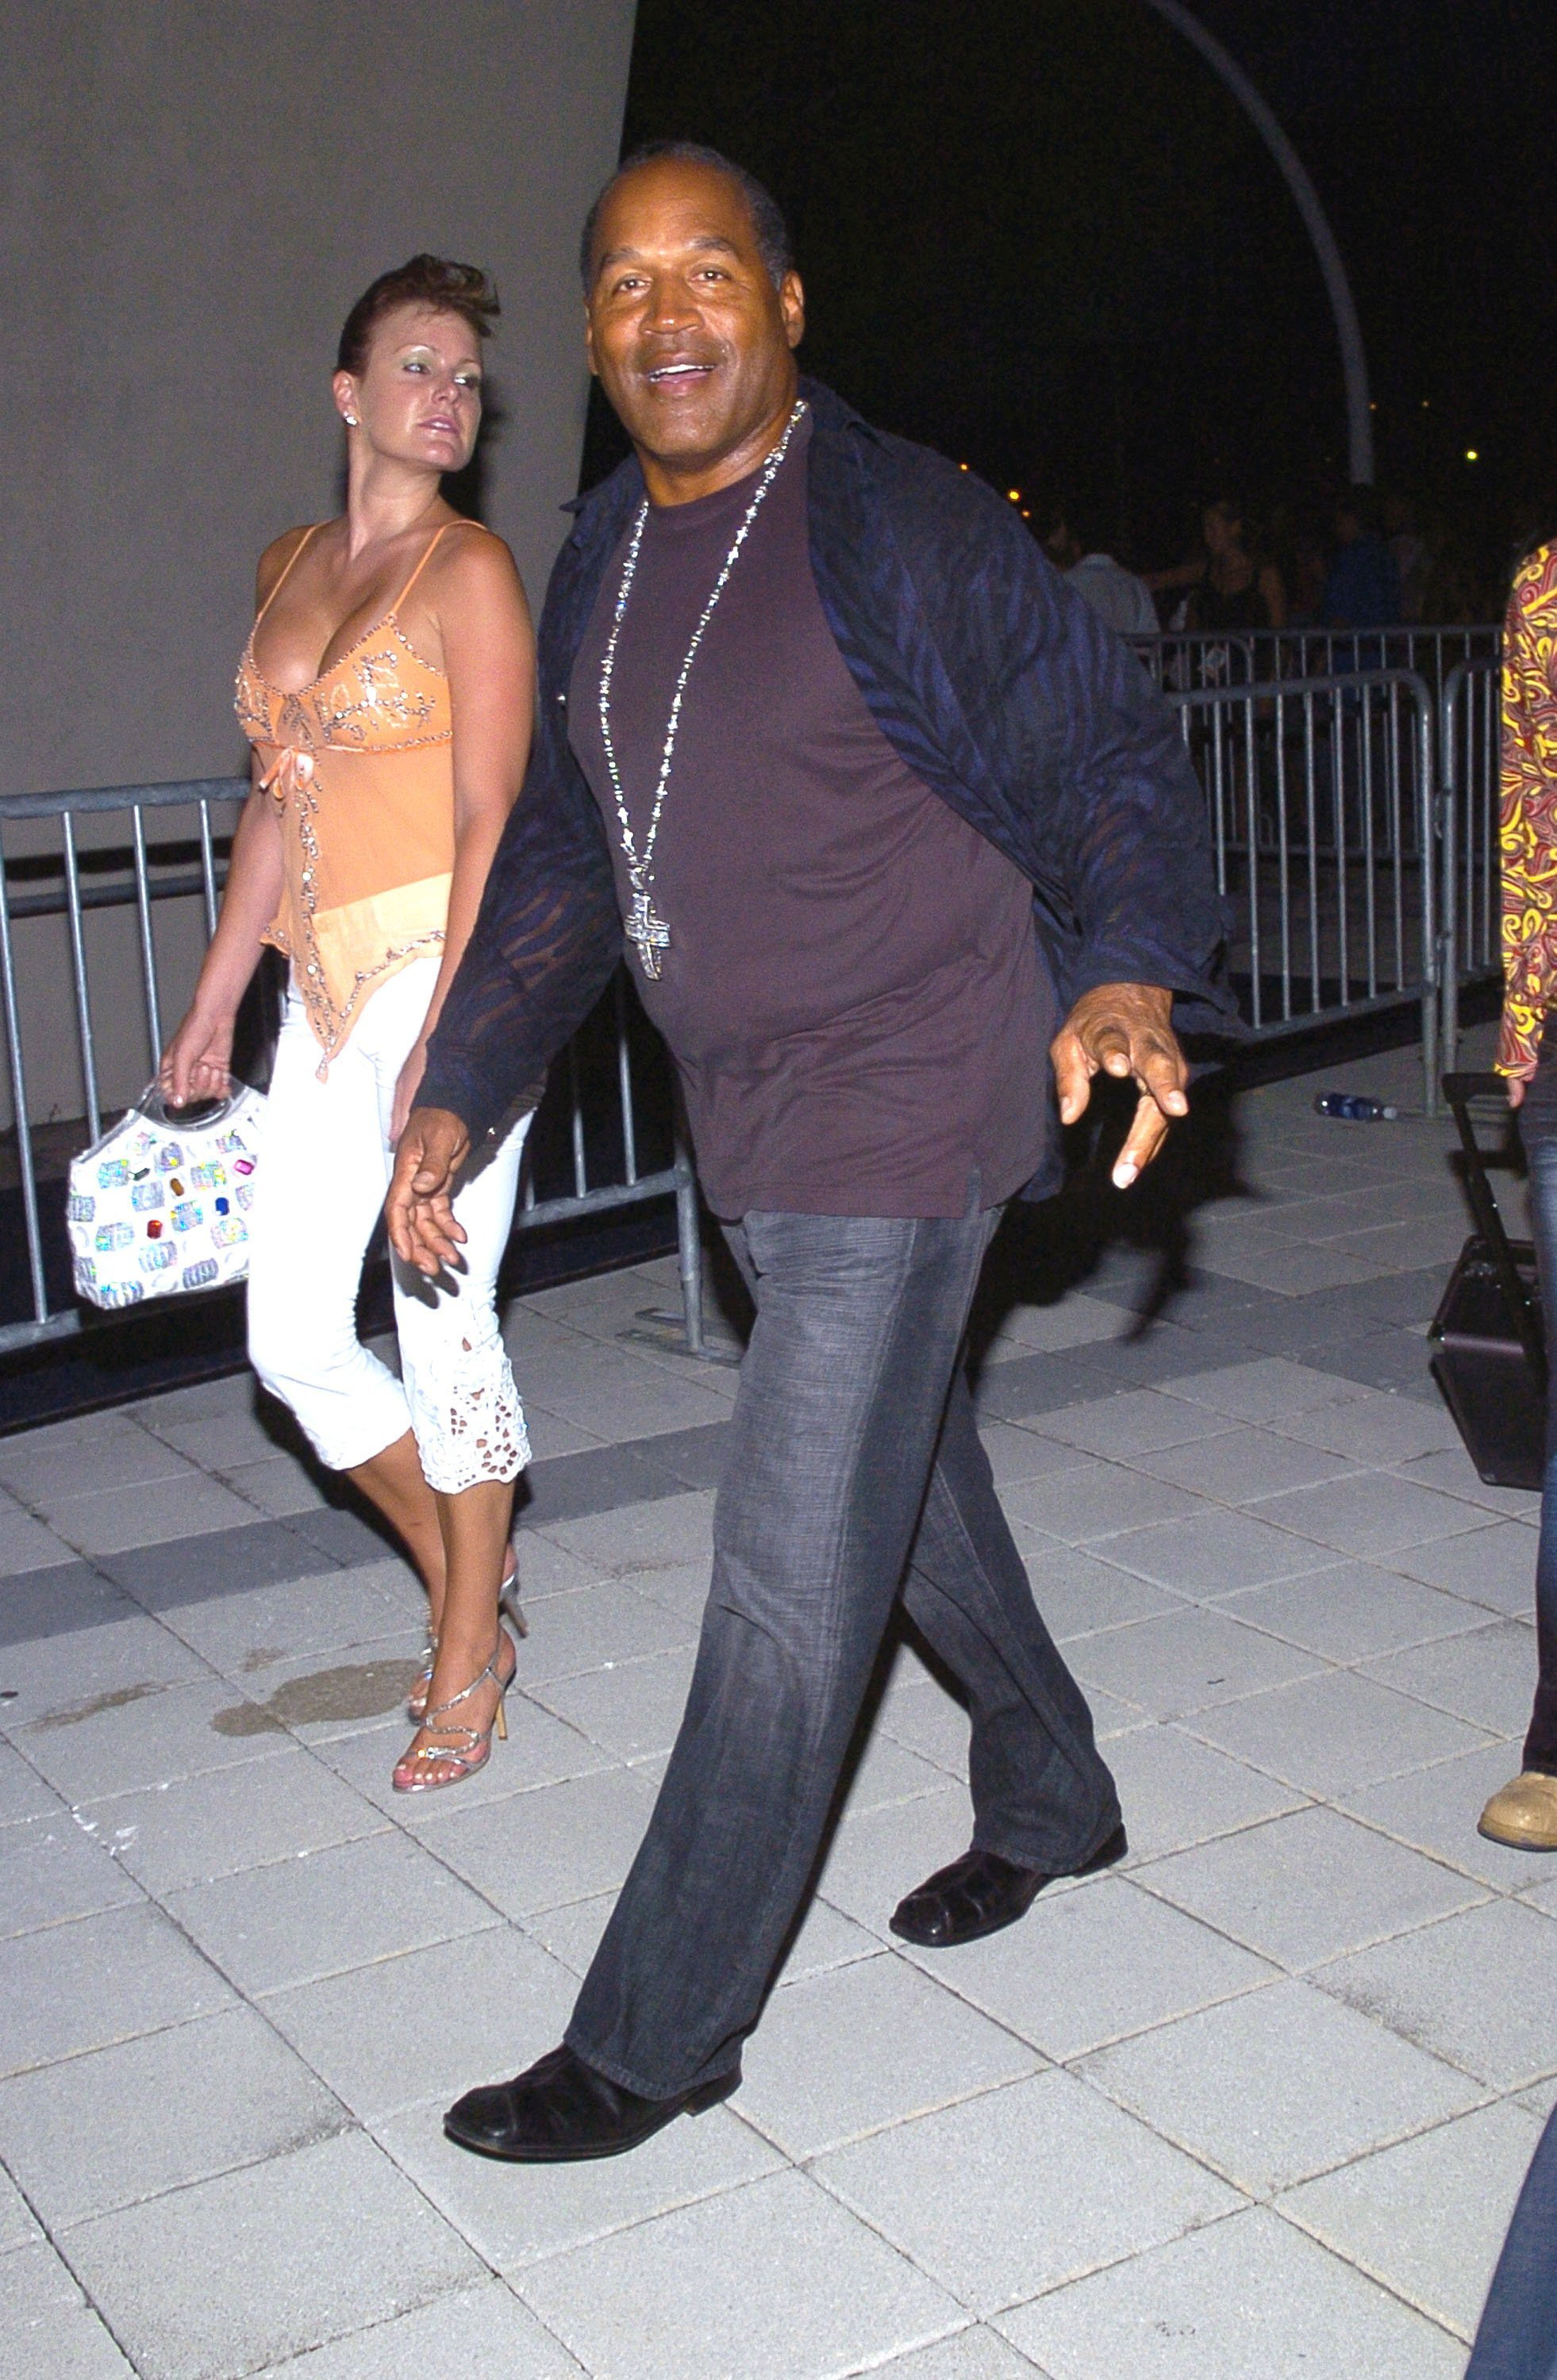 OJ Simpson arriving at MTV's VMA's in 2005. | Photo: Getty Images